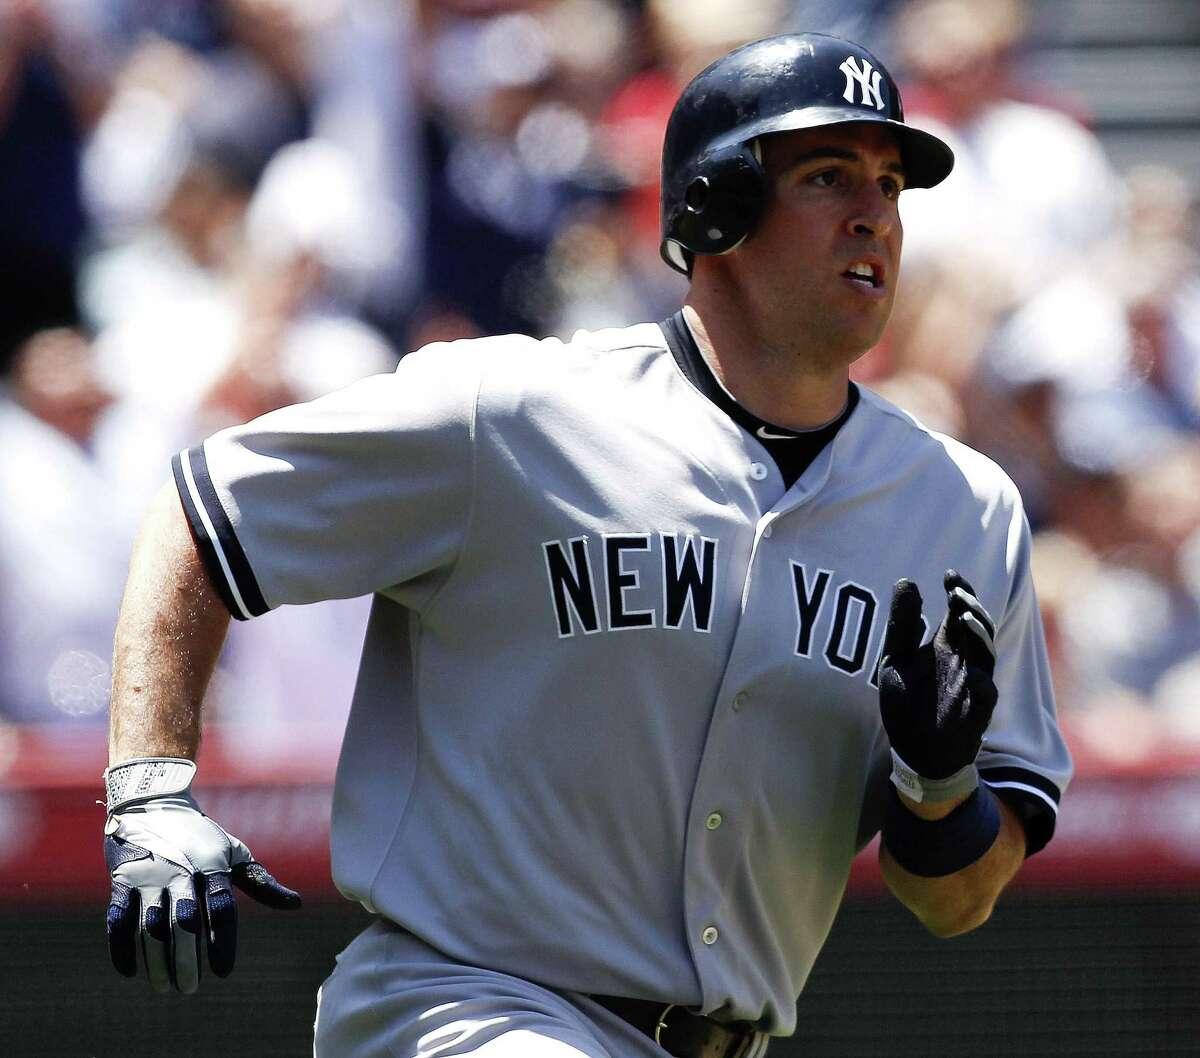 New York Yankees' Mark Teixeira, watches his two-run home run against the Los Angeles Angels during the fifth inning of a baseball game in Anaheim, Calif., Sunday, June 5, 2011. (AP Photo/Chris Carlson)